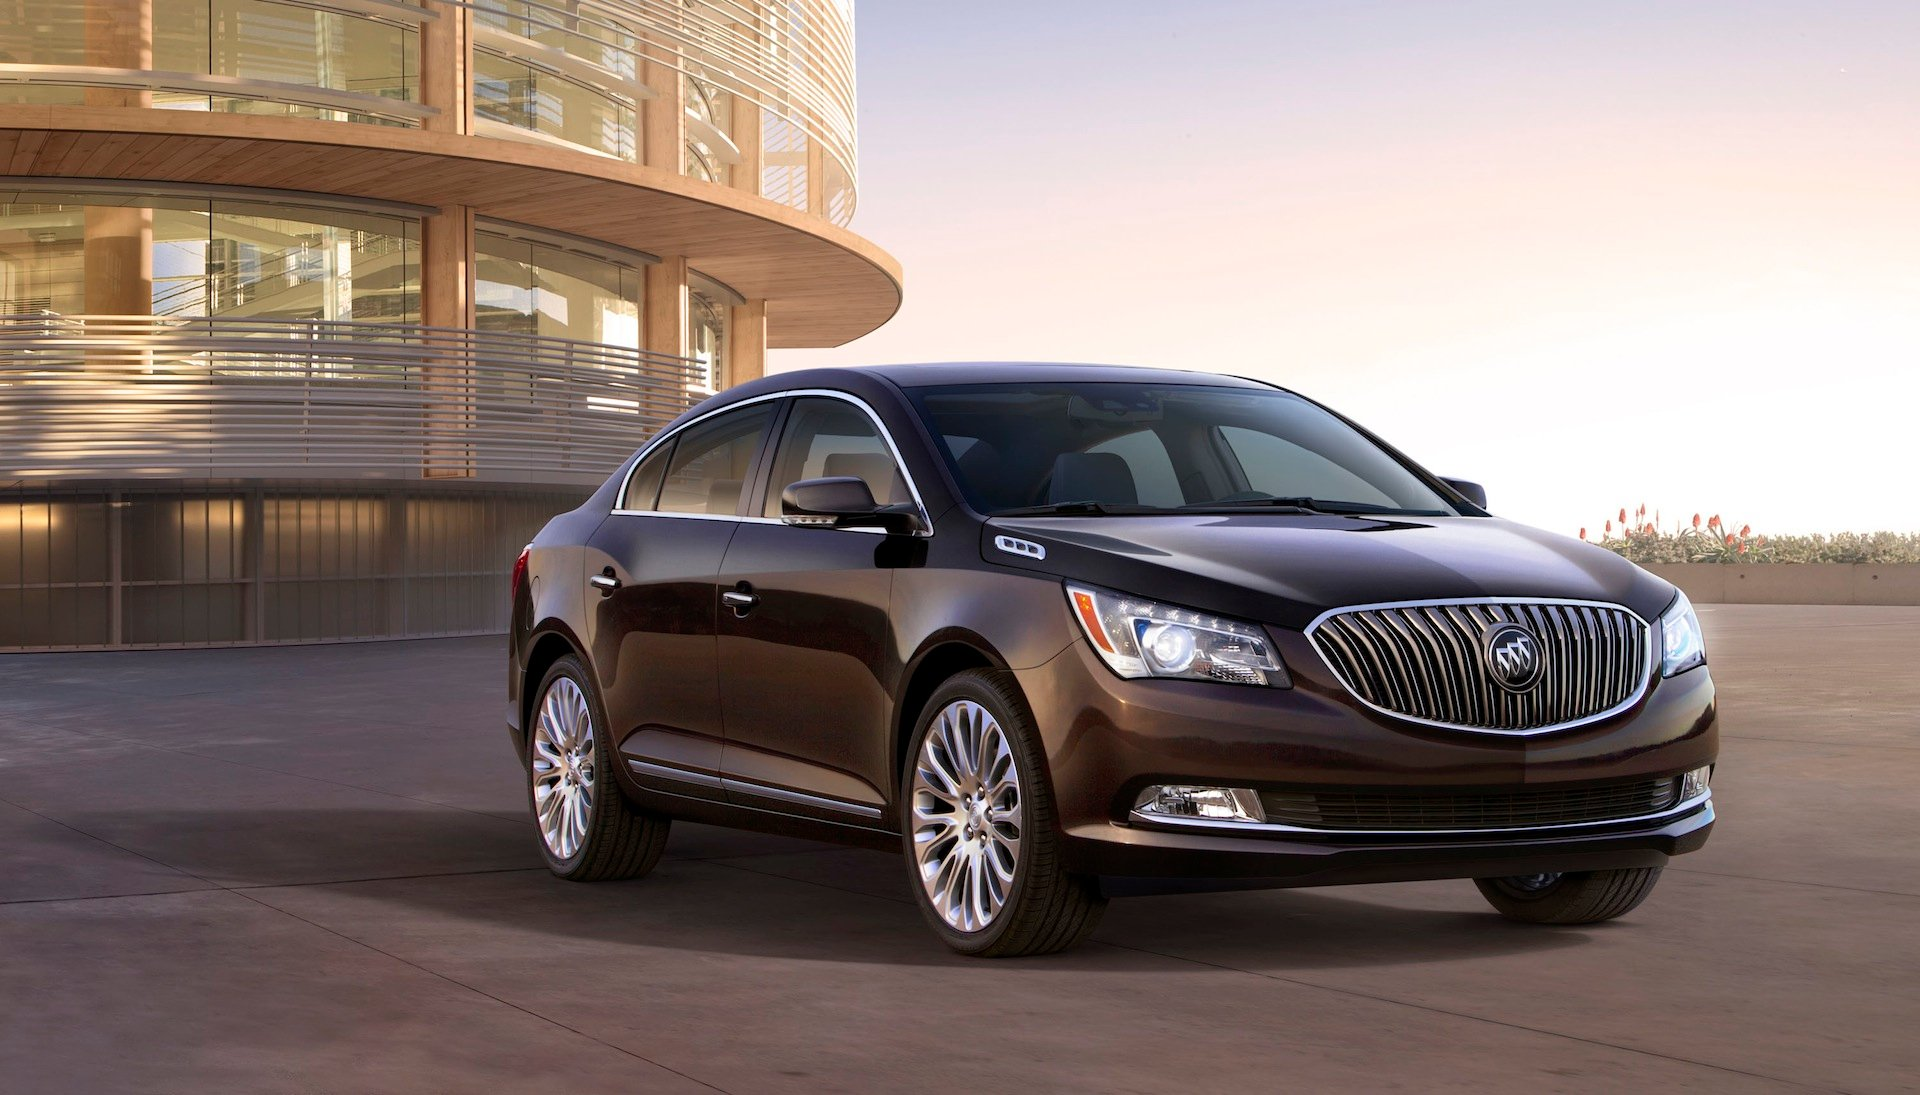 buick lacrosse pictures #1